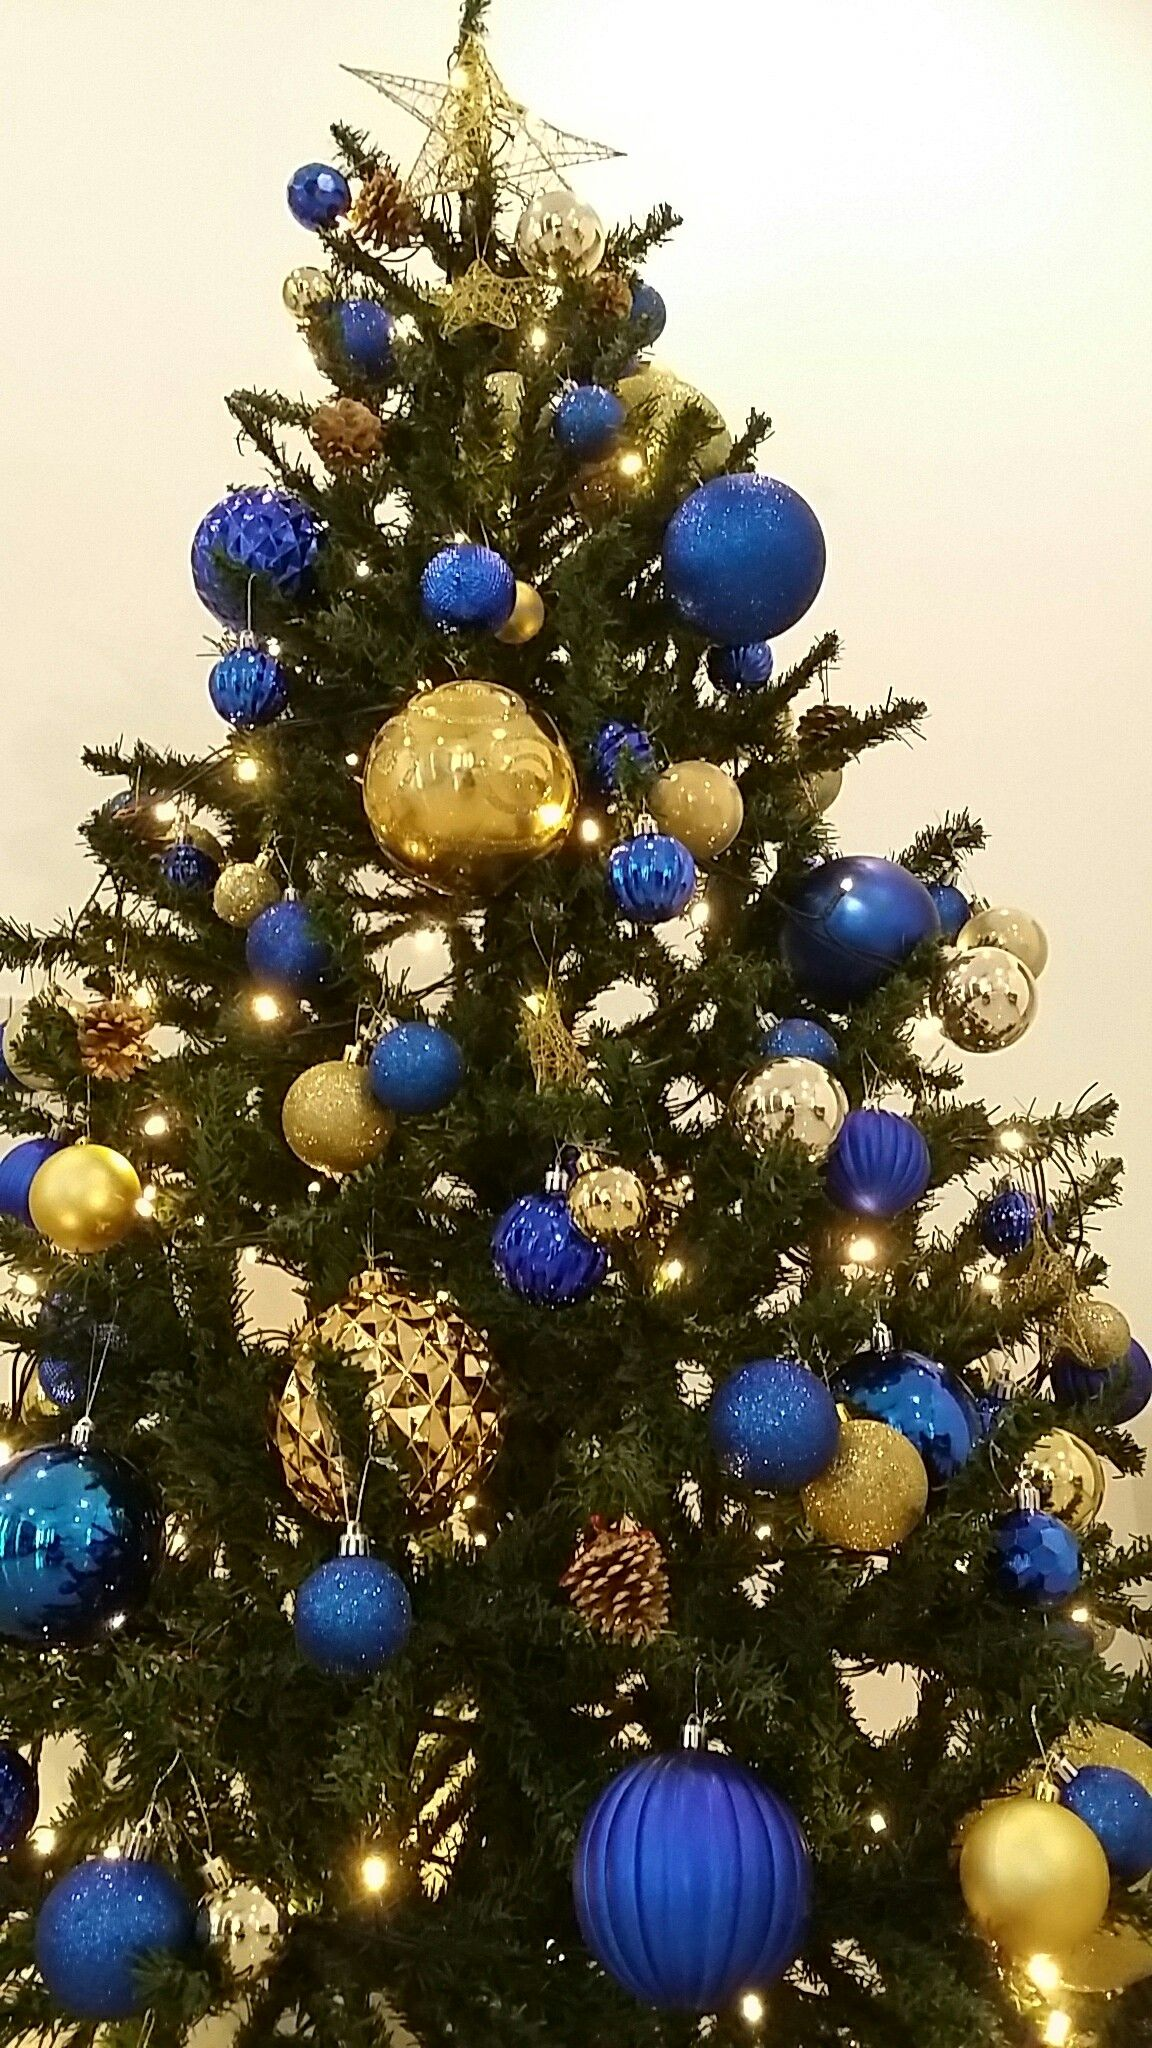 Blue And Gold Christmas Tree Gold Christmas Decorations Christmas Tree Inspiration Blue Christmas Tree